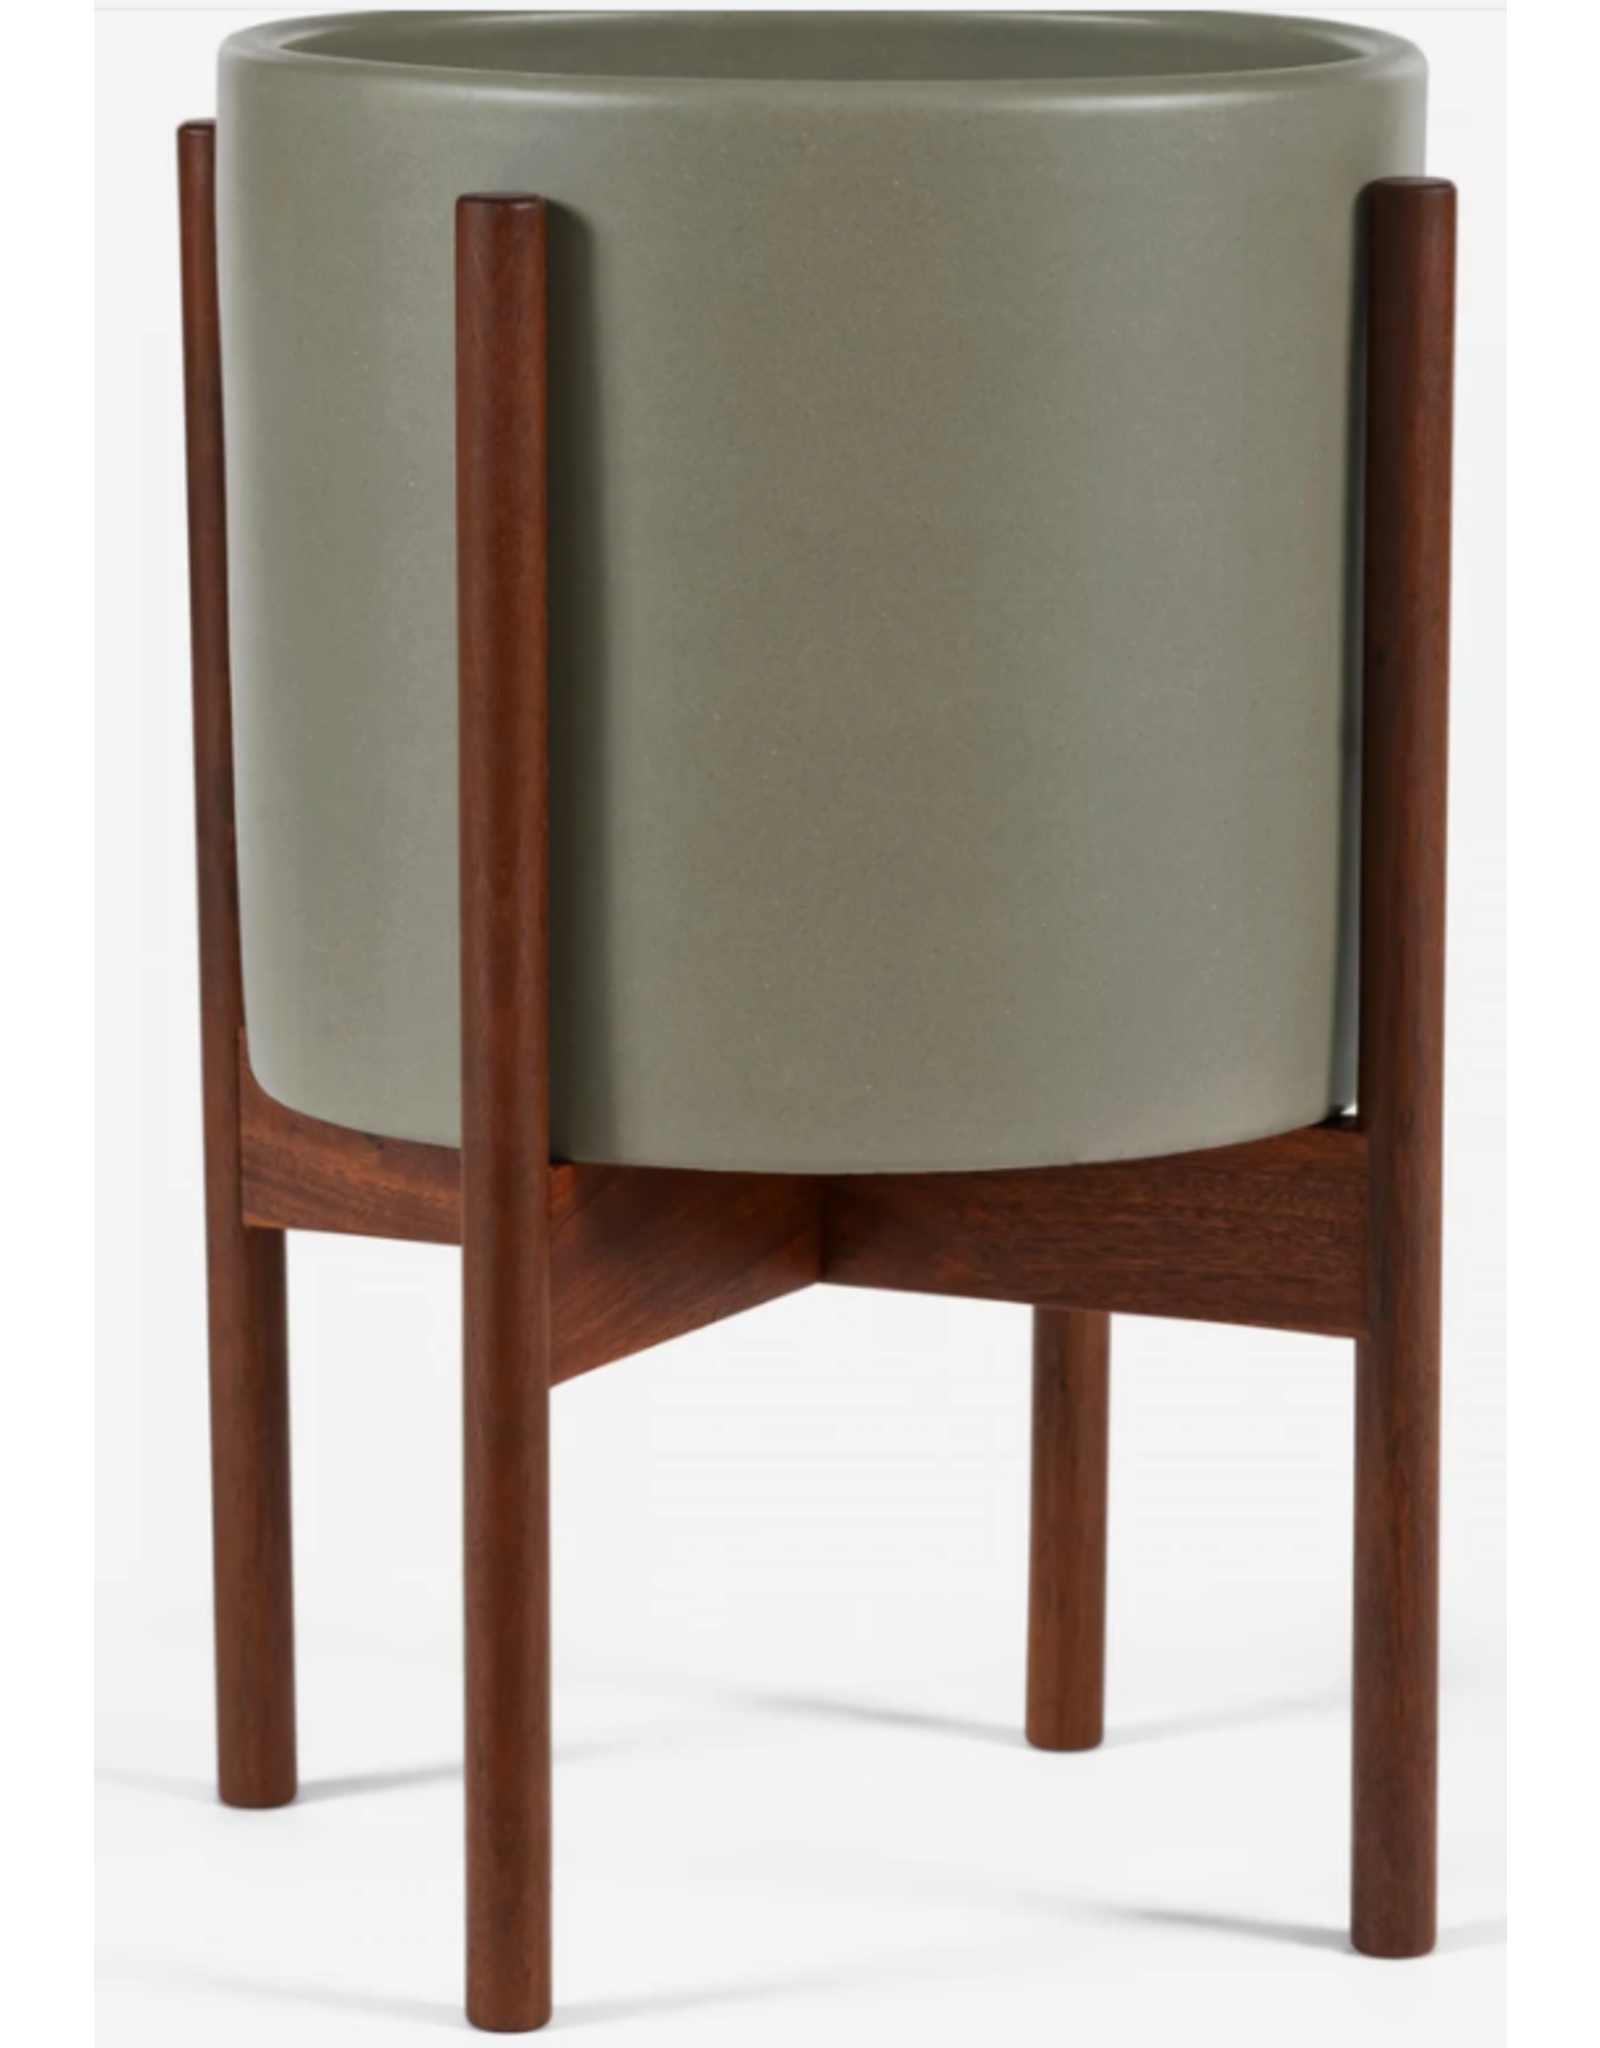 Modernica Pebble Cylinder with Wood Stand Large